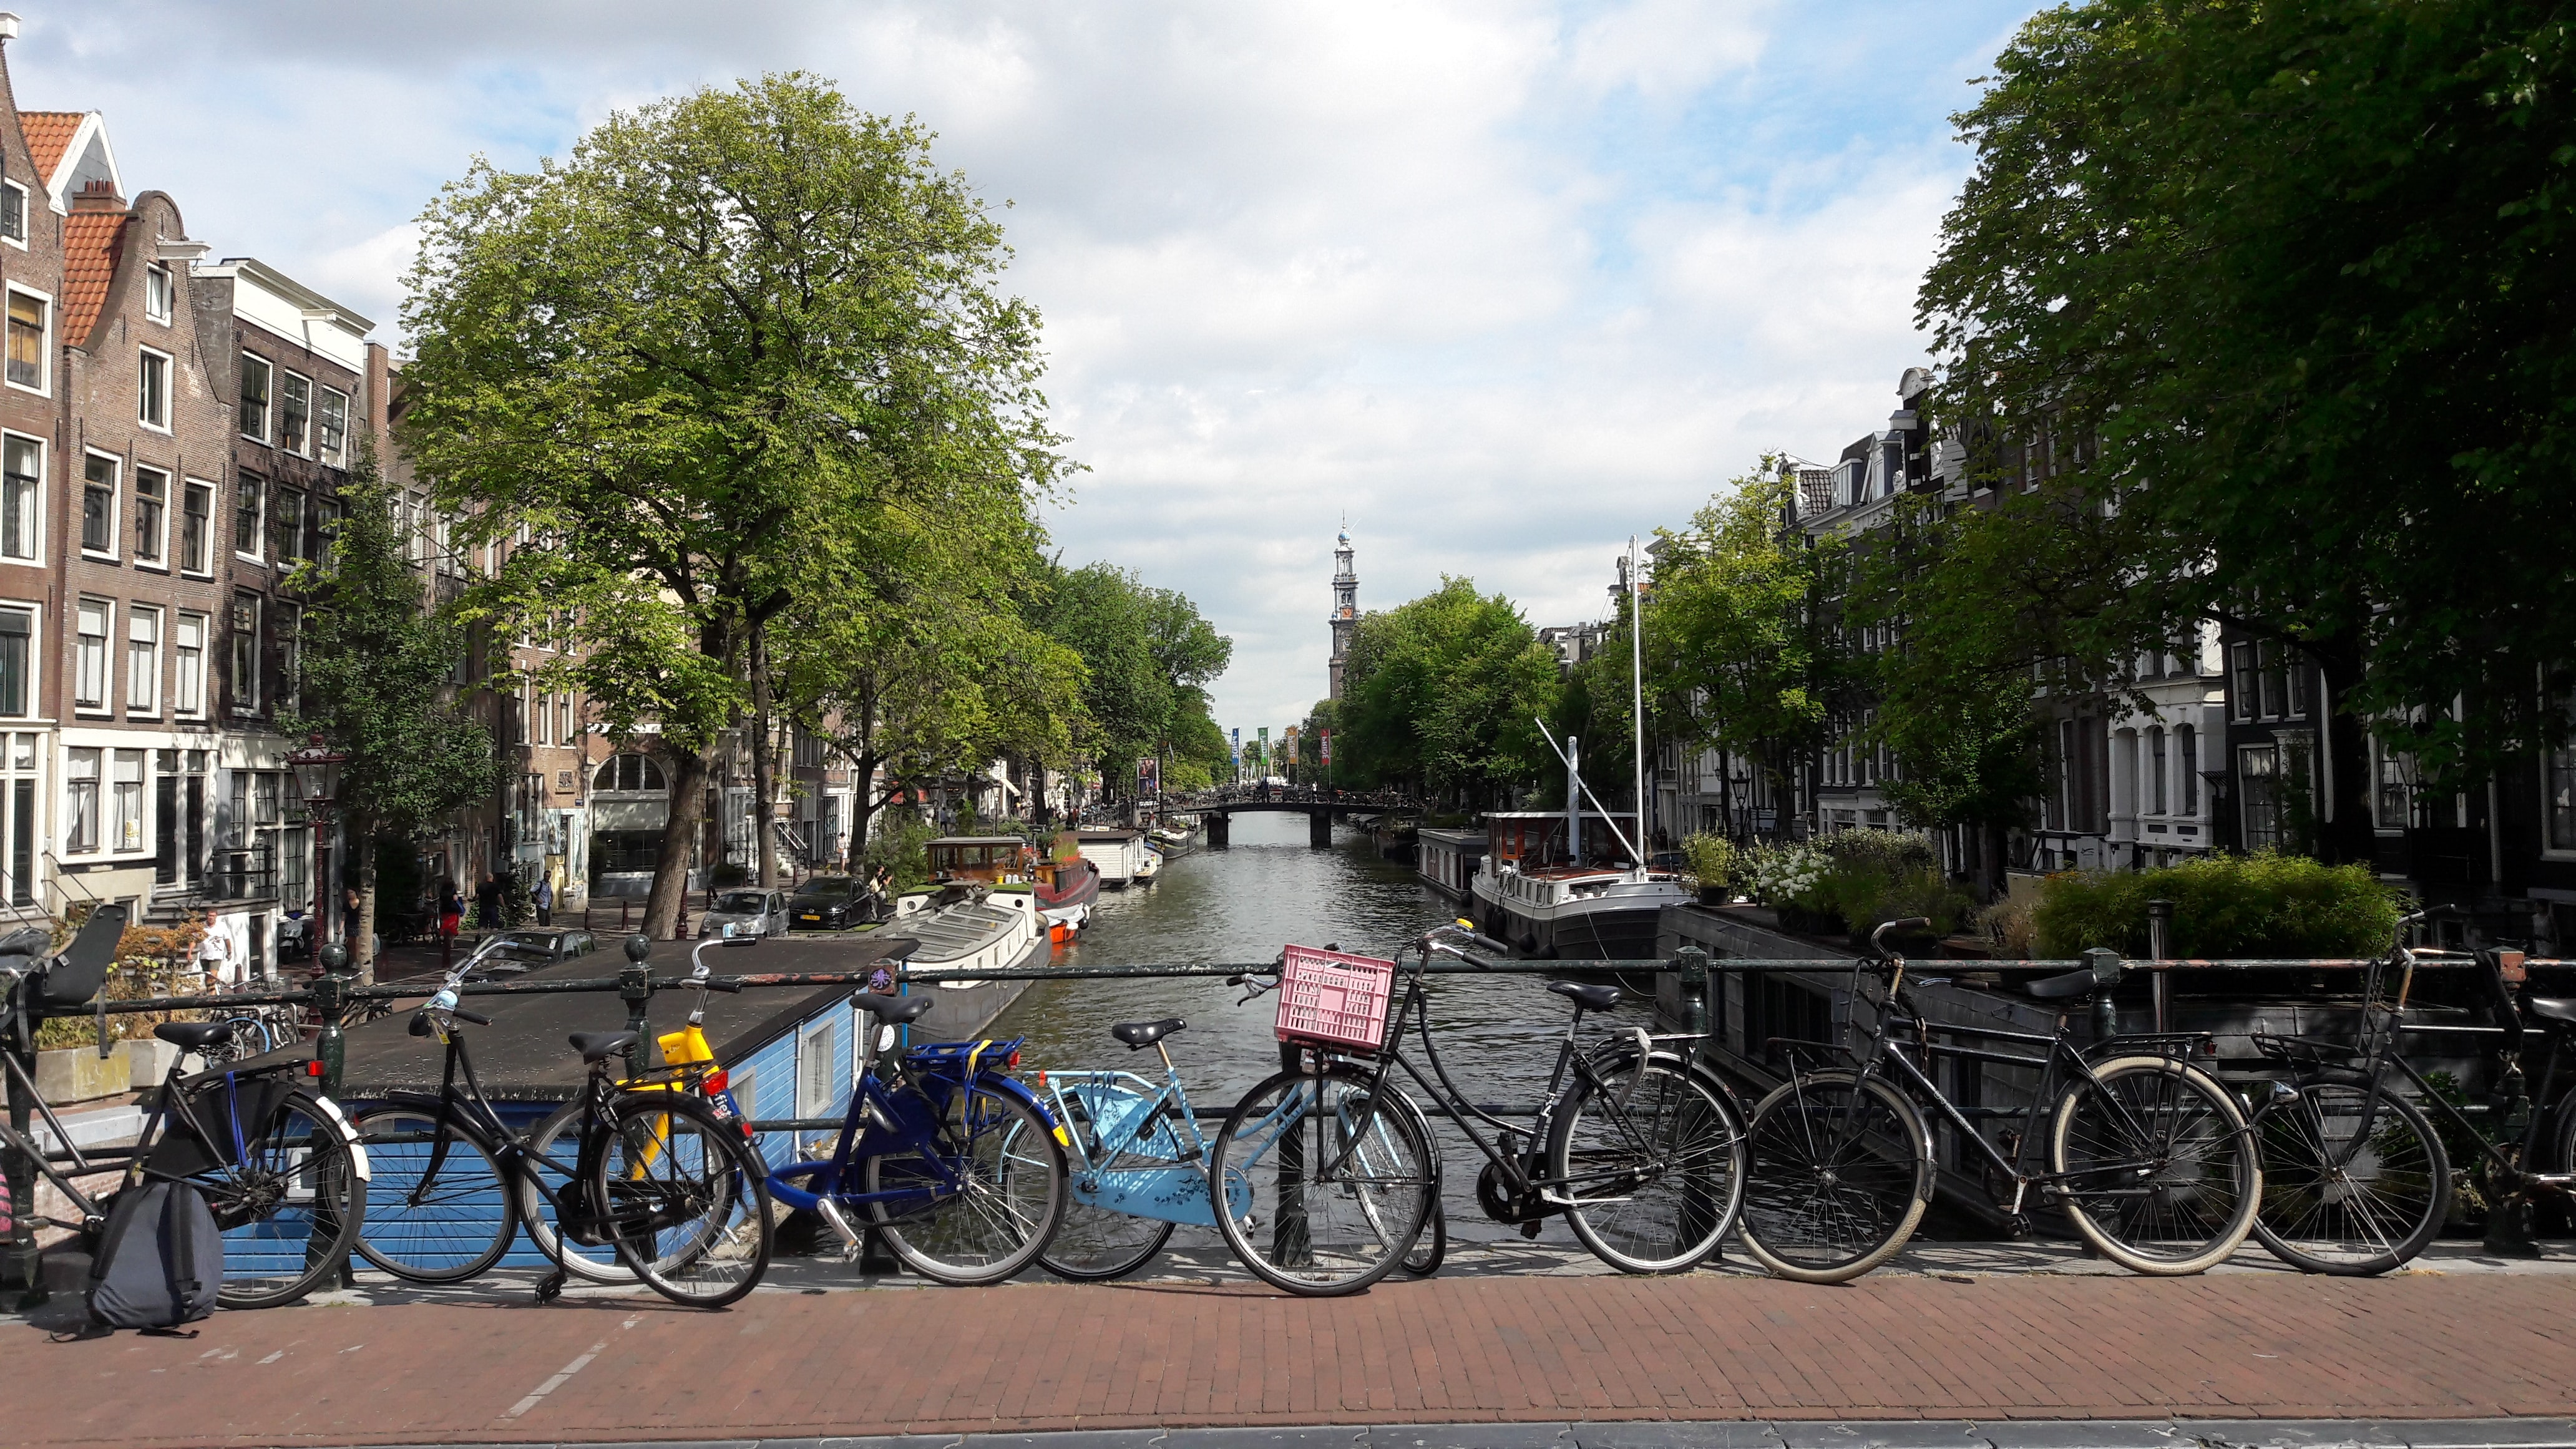 bicycles parked near body of water